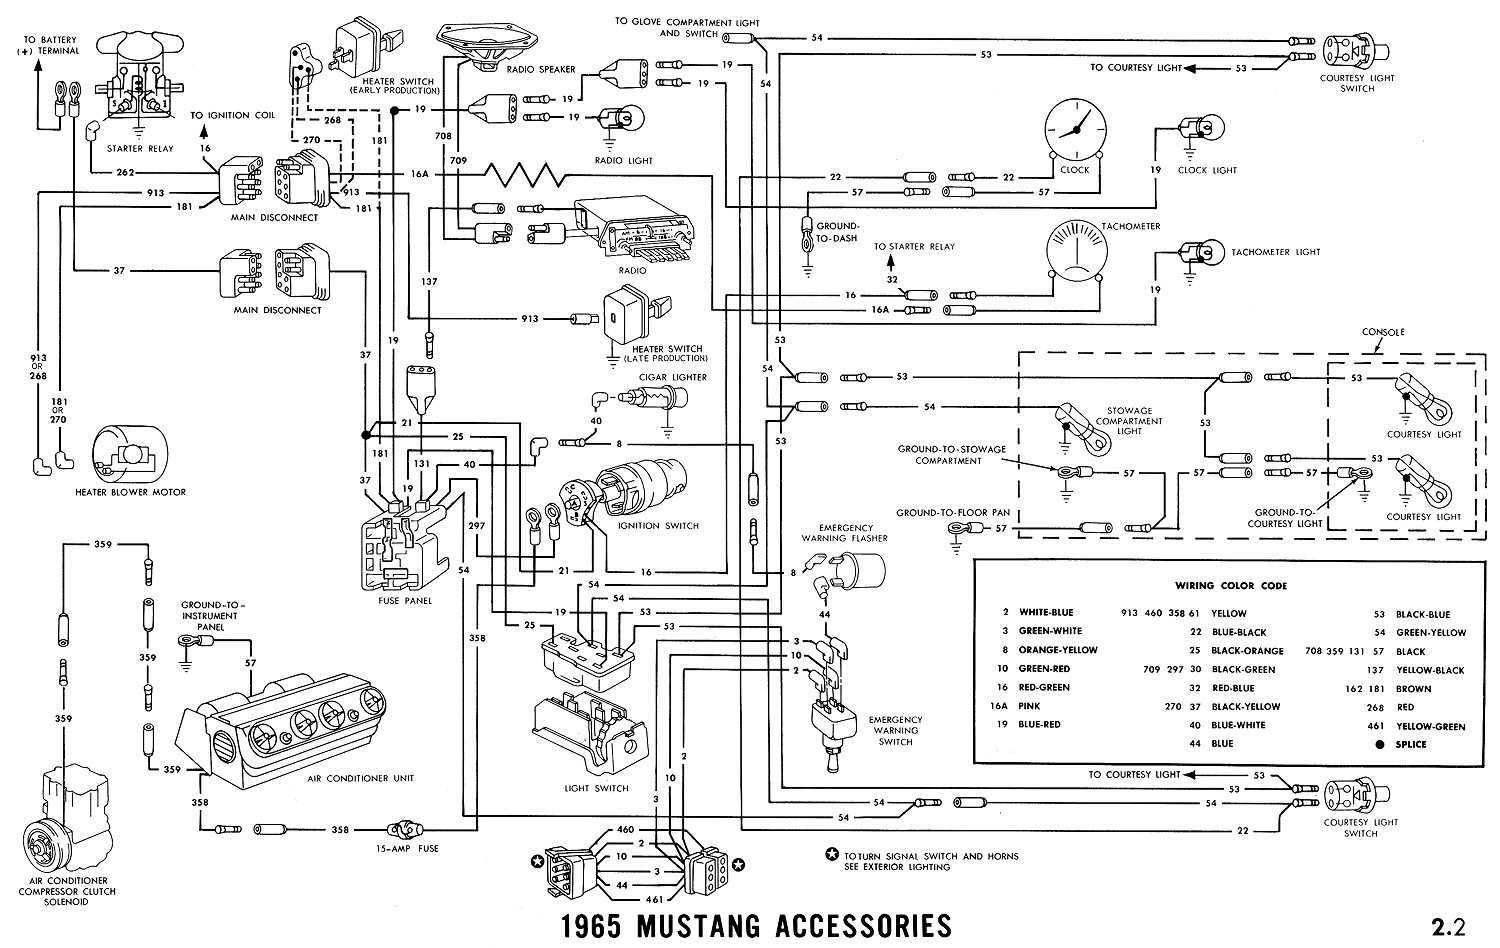 1965i diagrams 1266868 ford transit radio wiring diagram wiring 98 mustang gt stereo wiring harness at mifinder.co